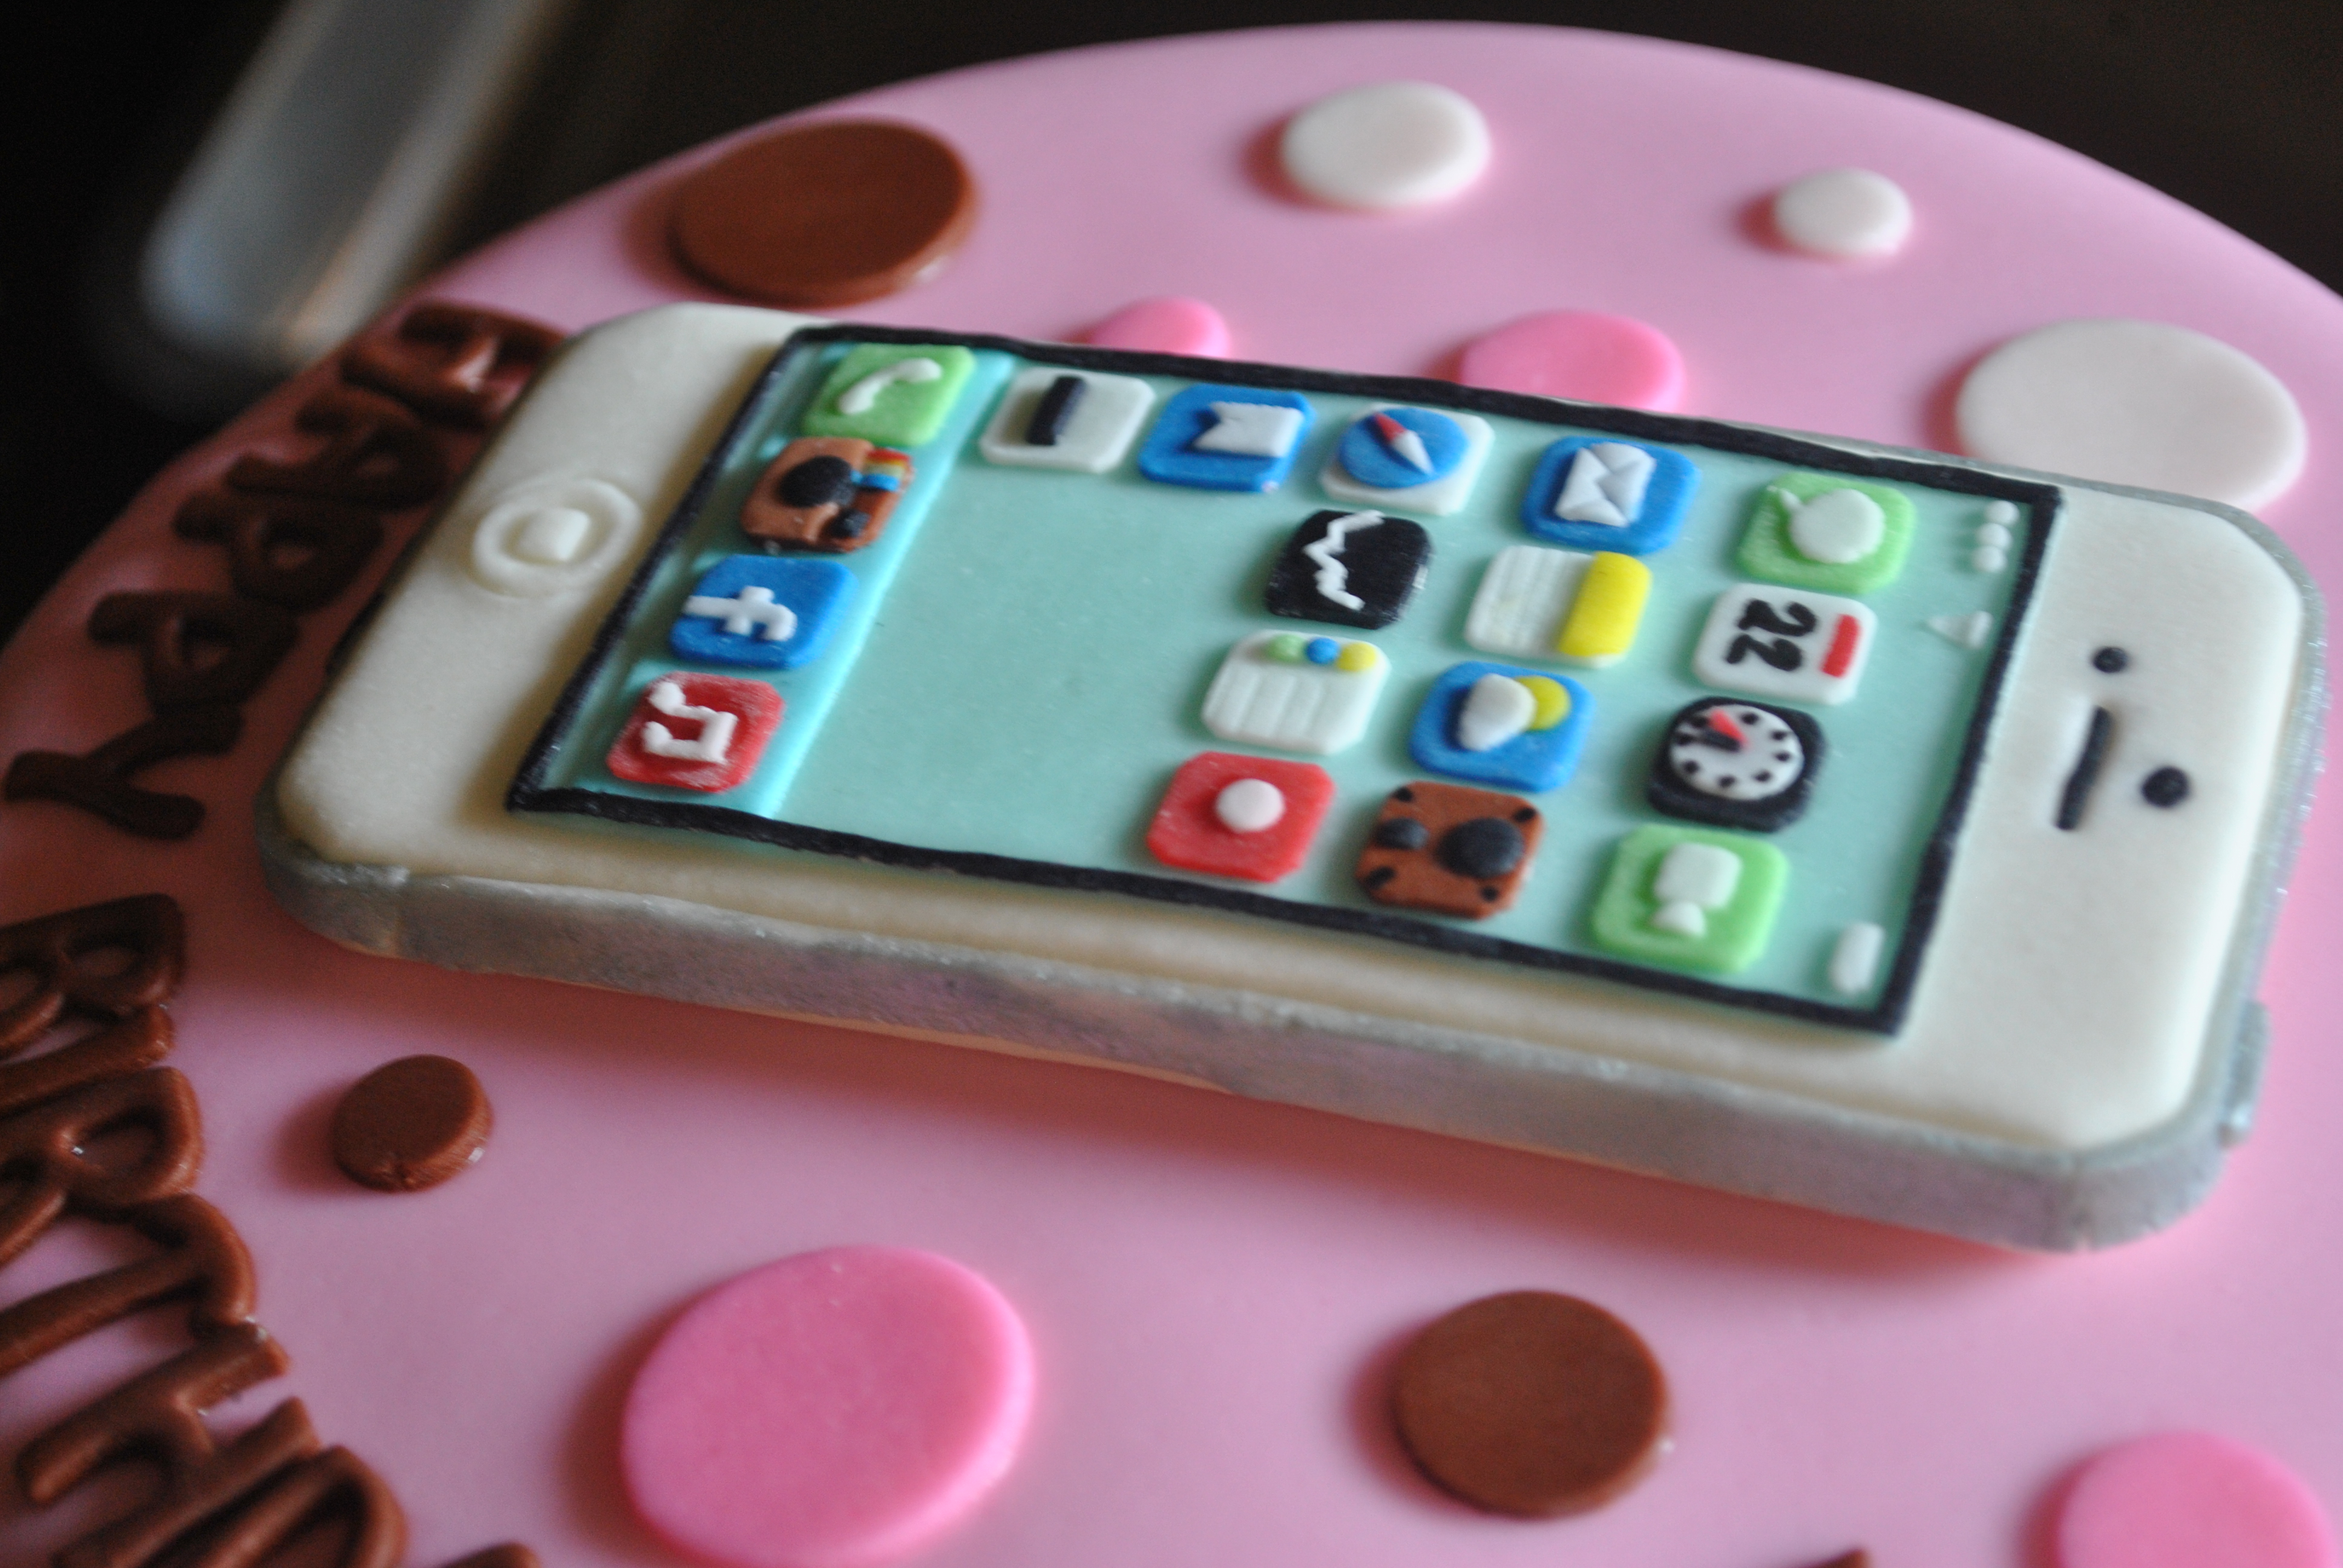 Iphone Cake For Lannie S 25th Birthday Aj Food Creations